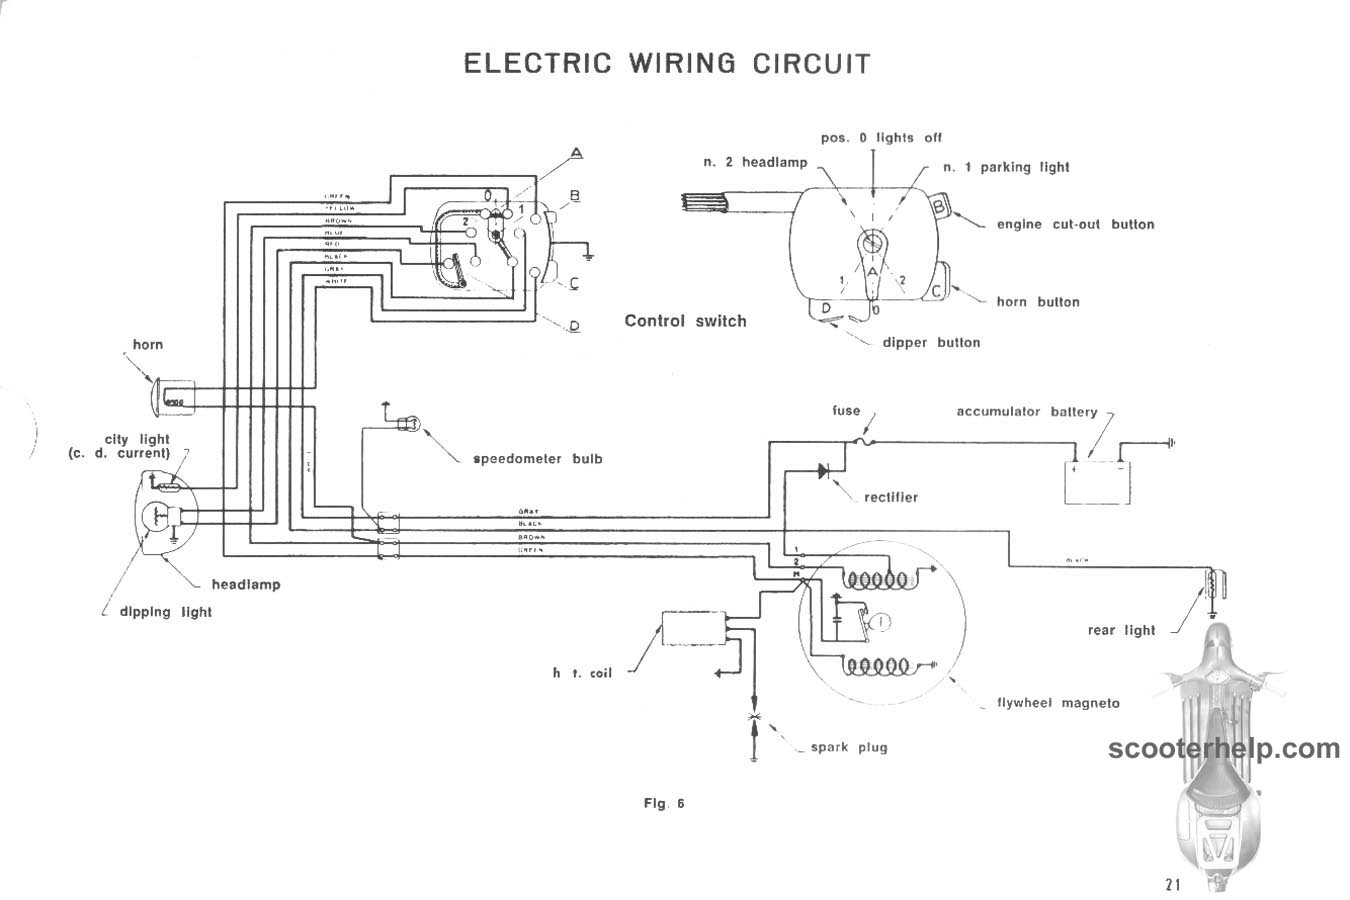 motobecane wiring diagram wiring library150 ld factory repair manual 21 150 ld factory repair manual electric scooter wiring diagrams at